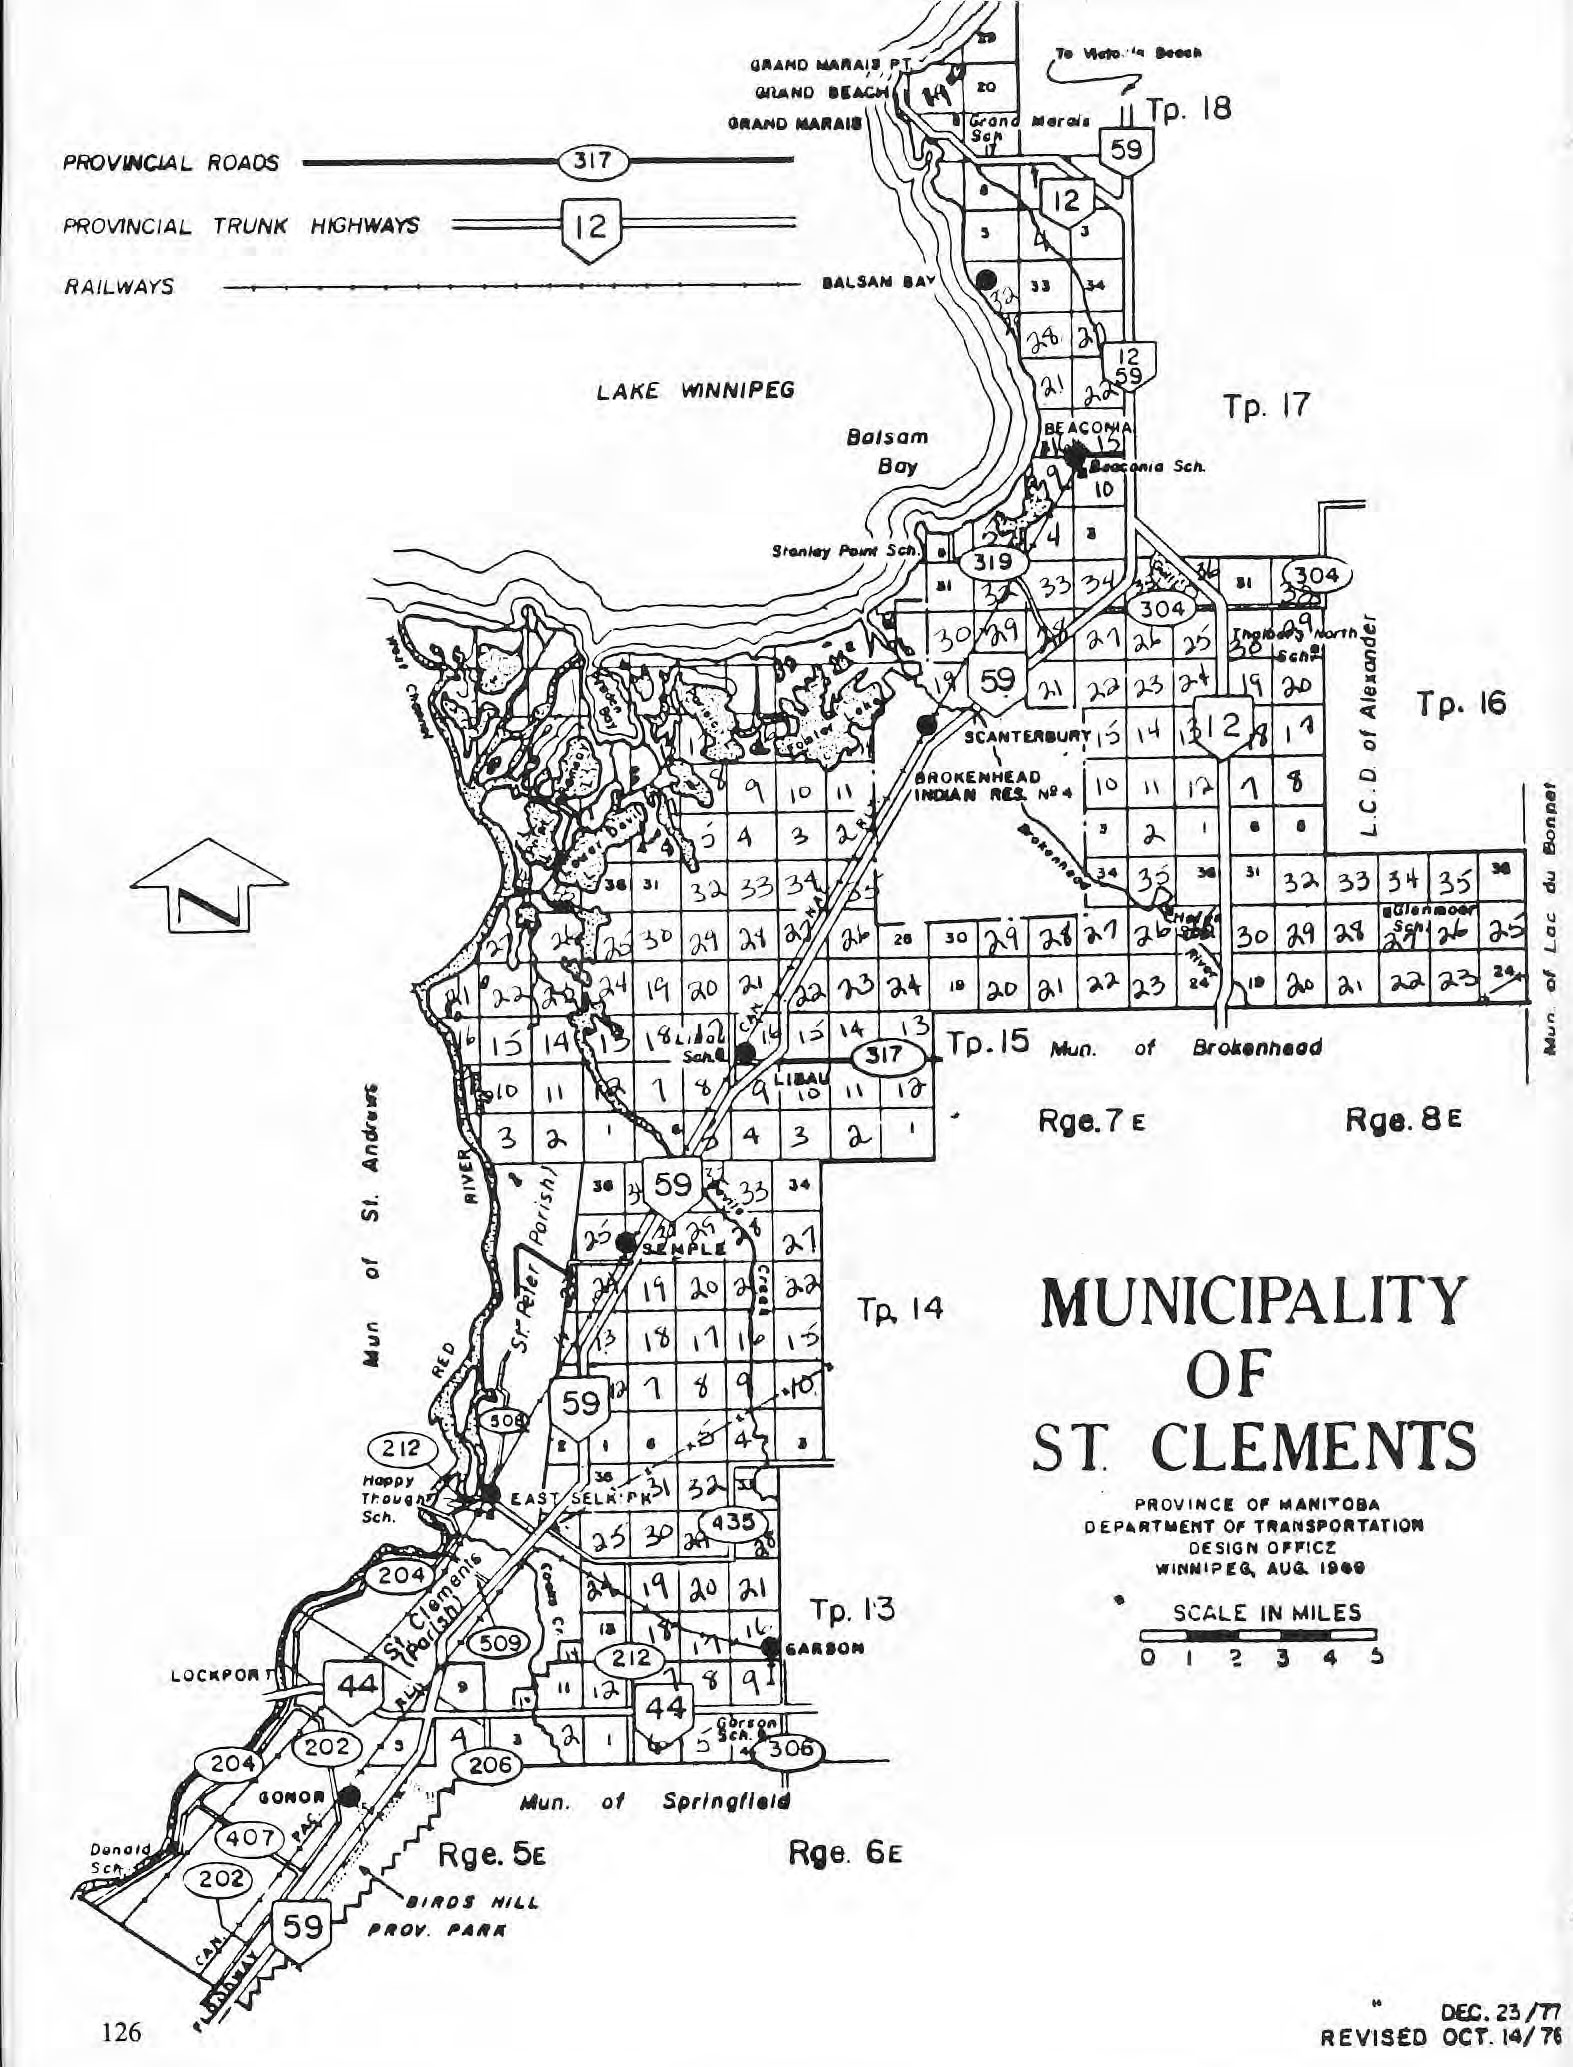 Map of St. Clements